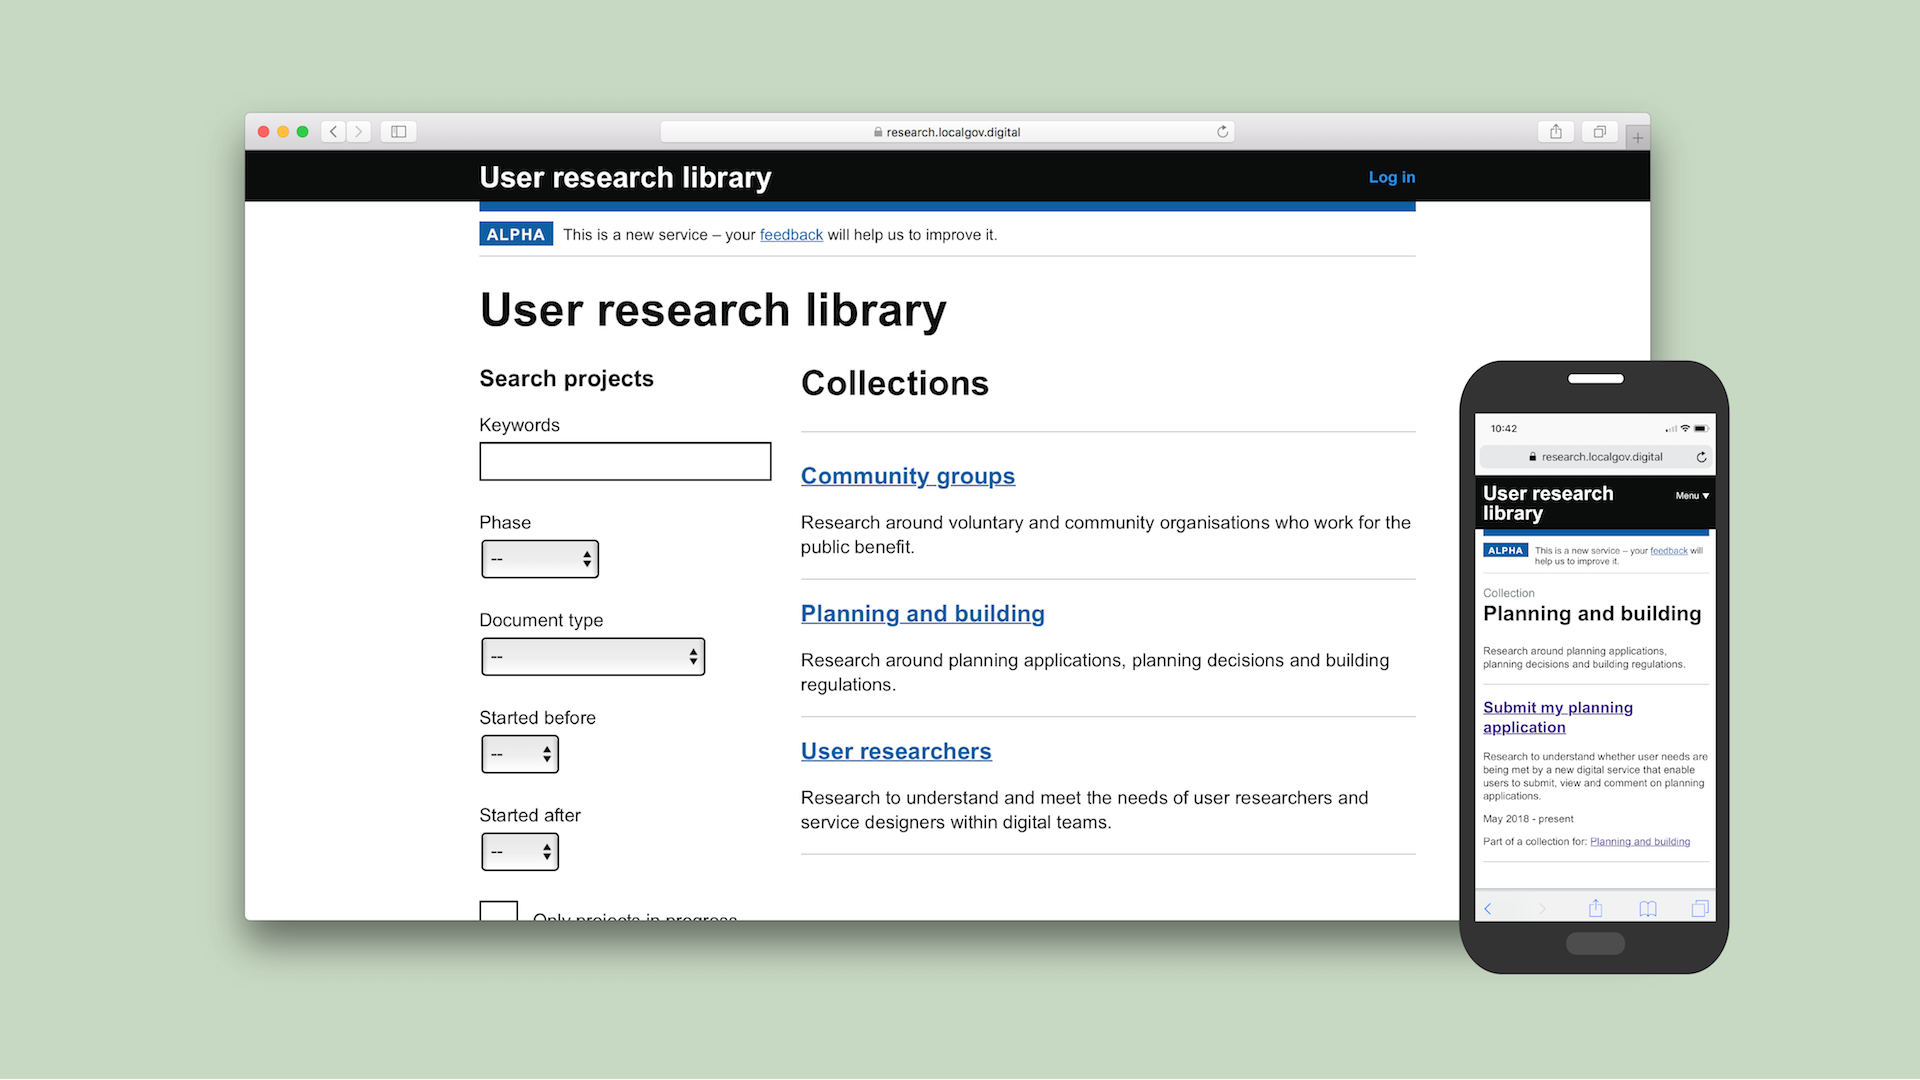 User research library